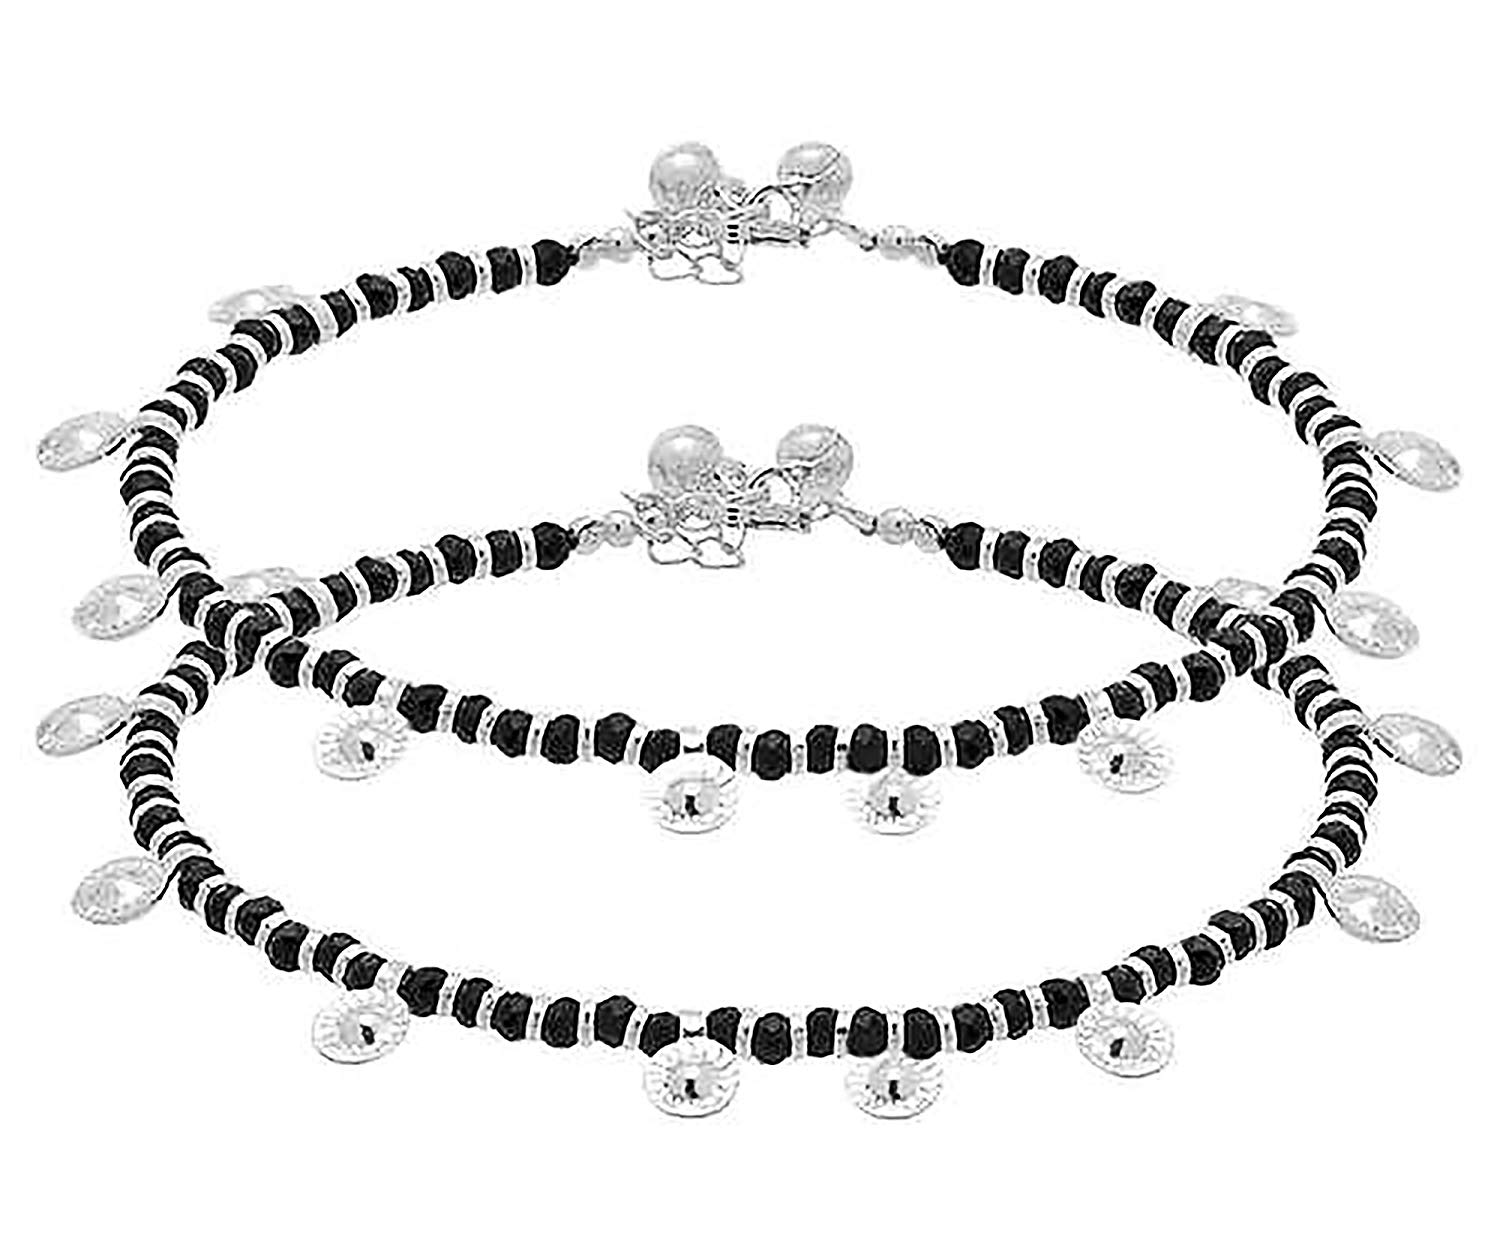 D&D Crafts BLACK BEADS STUDDED STERLING SILVER ANKLETS For Women, Girls